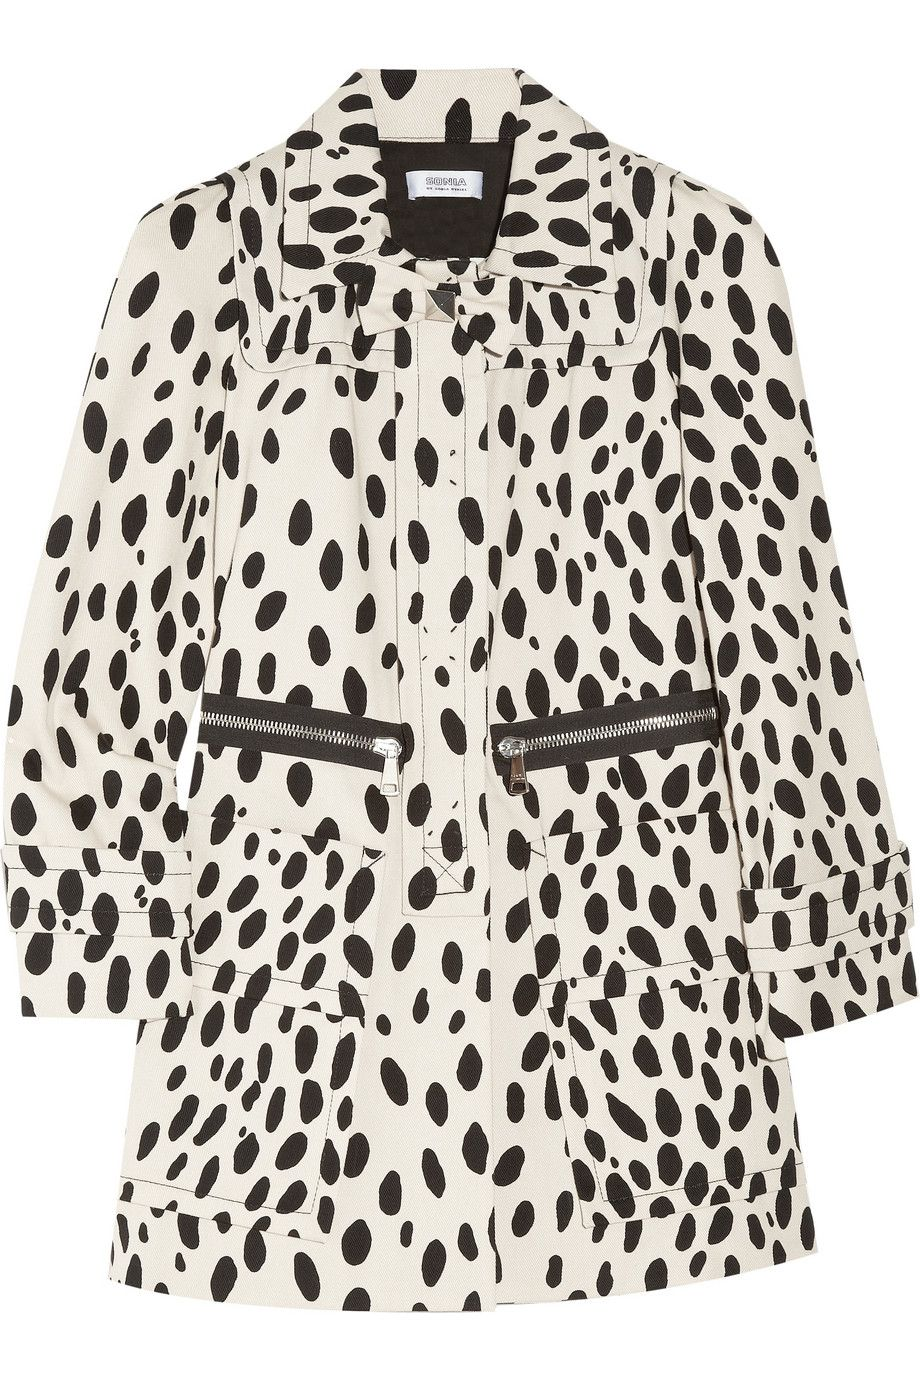 6aee378262 Dalmatian-print cotton-drill coat by Sonia by Sonia Rykiel ...